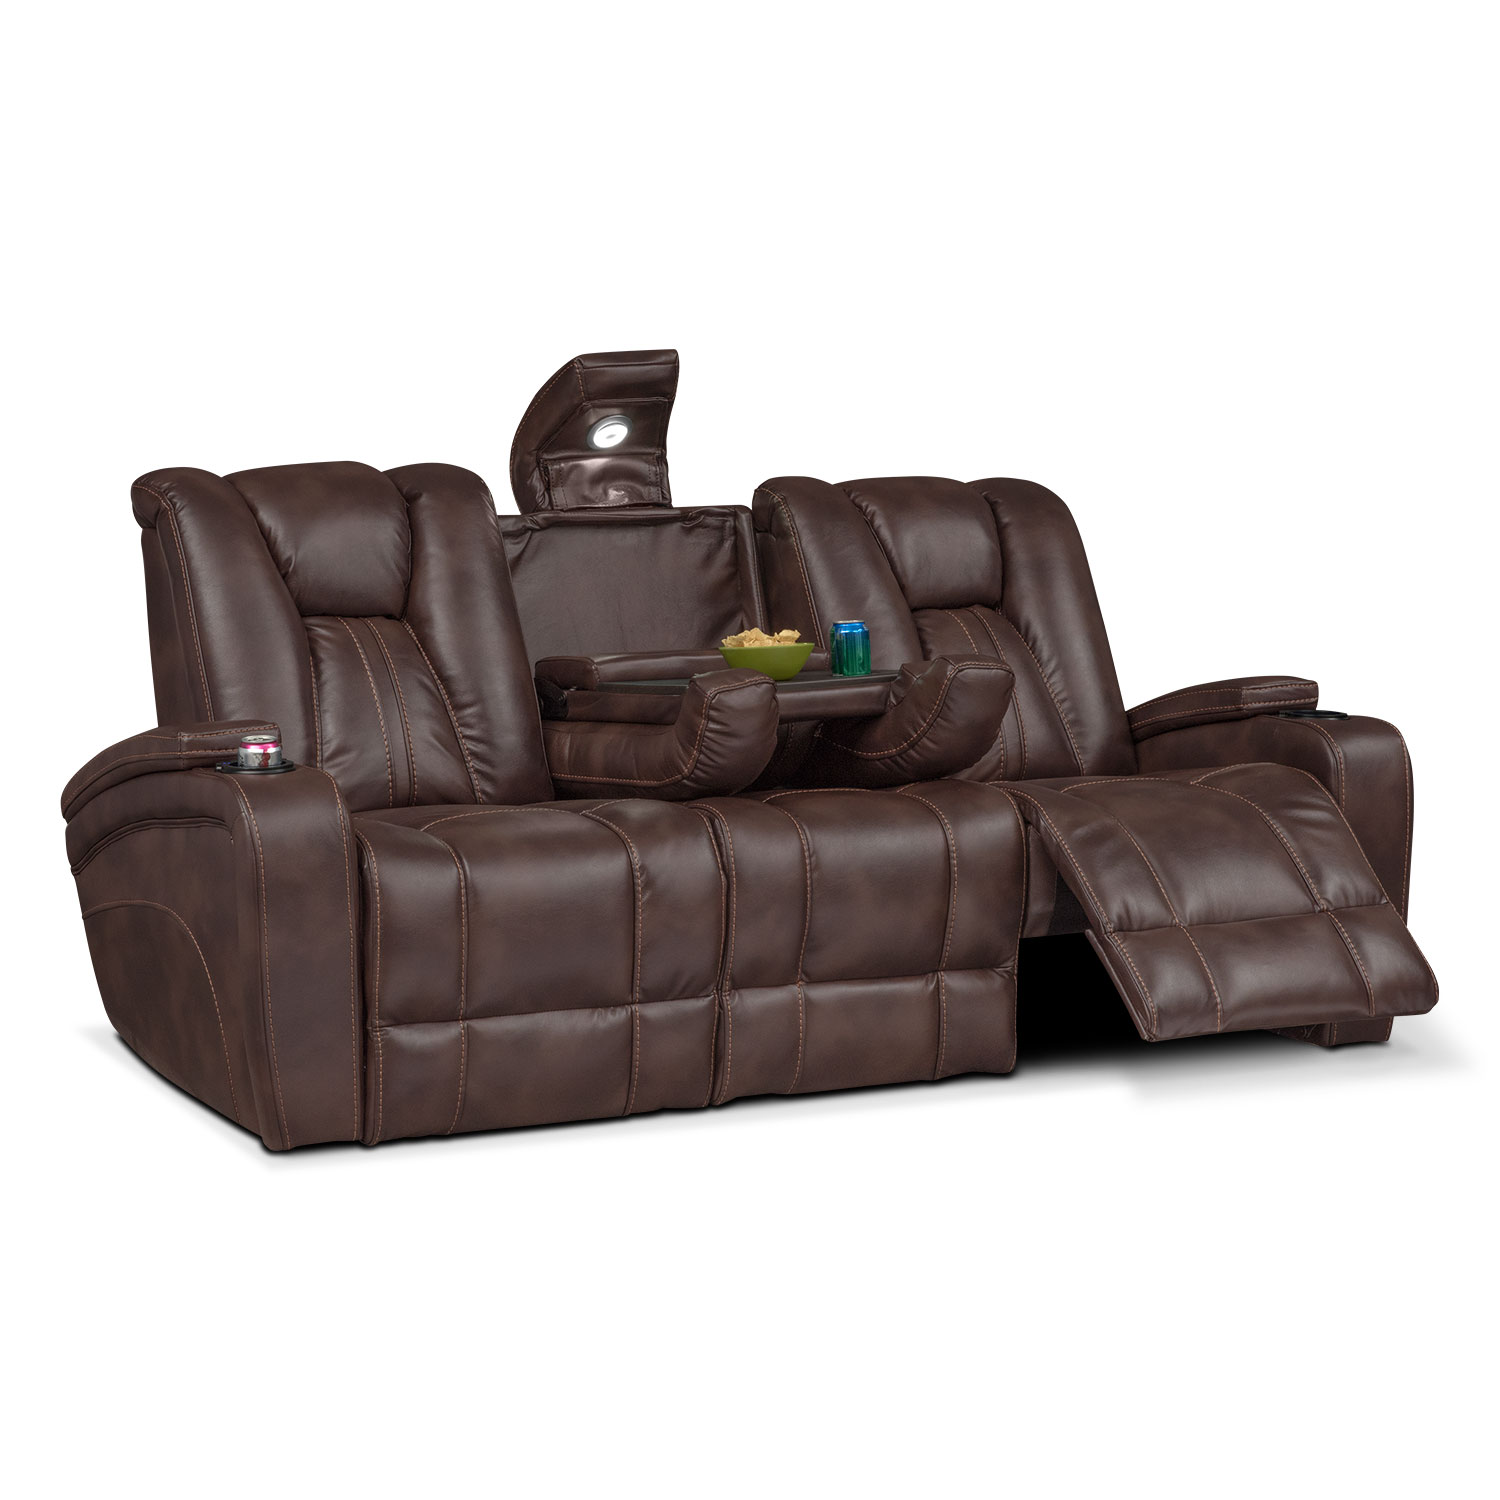 recliner sofa set 3 2 1 cost to reupholster a bed pulsar dual power reclining - brown | value city ...